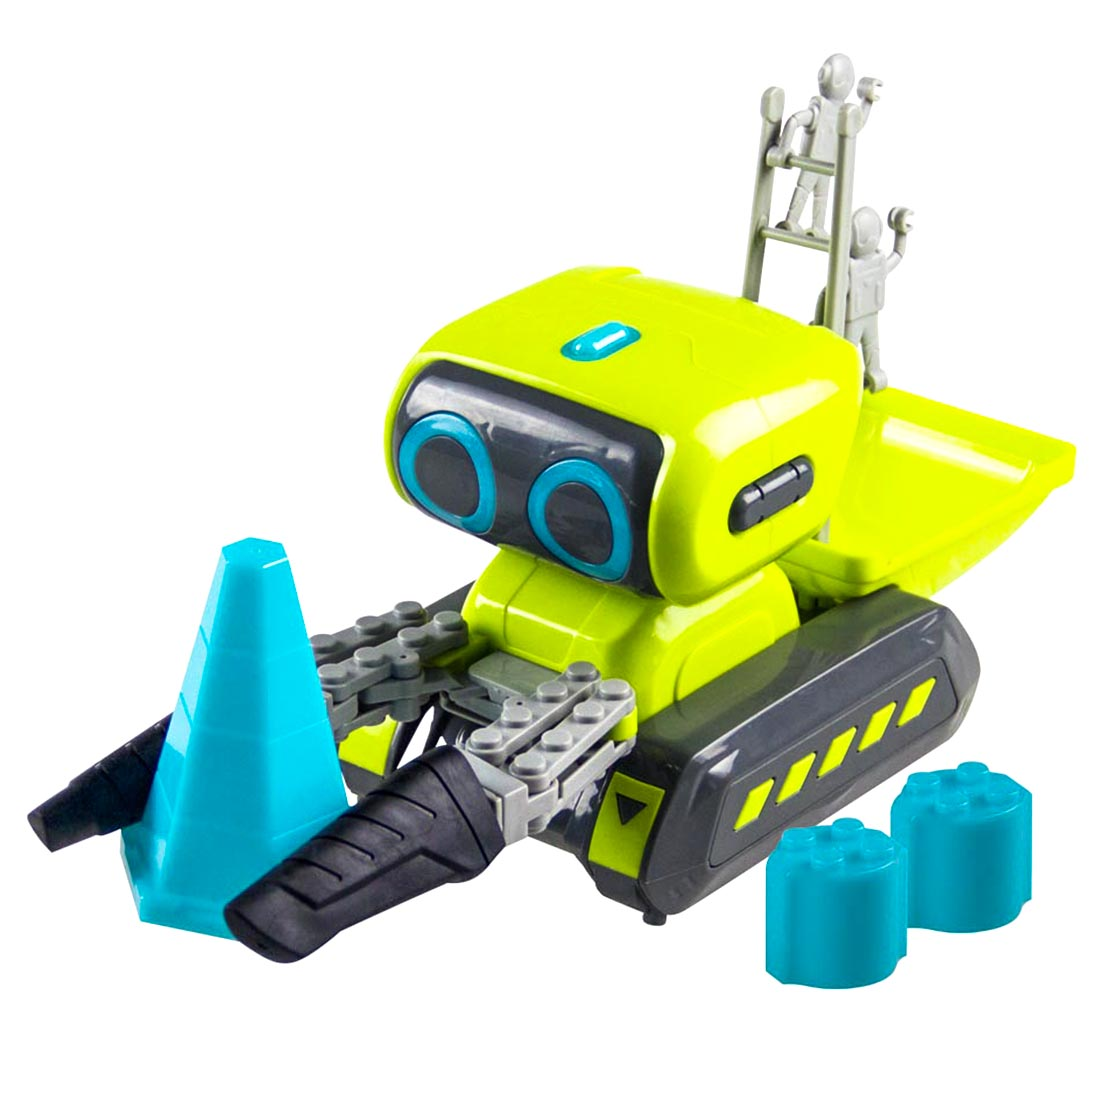 2019 New Smart Programming RC Robot Engineering Forklift RC Indoor Toy With Light And Music For Children